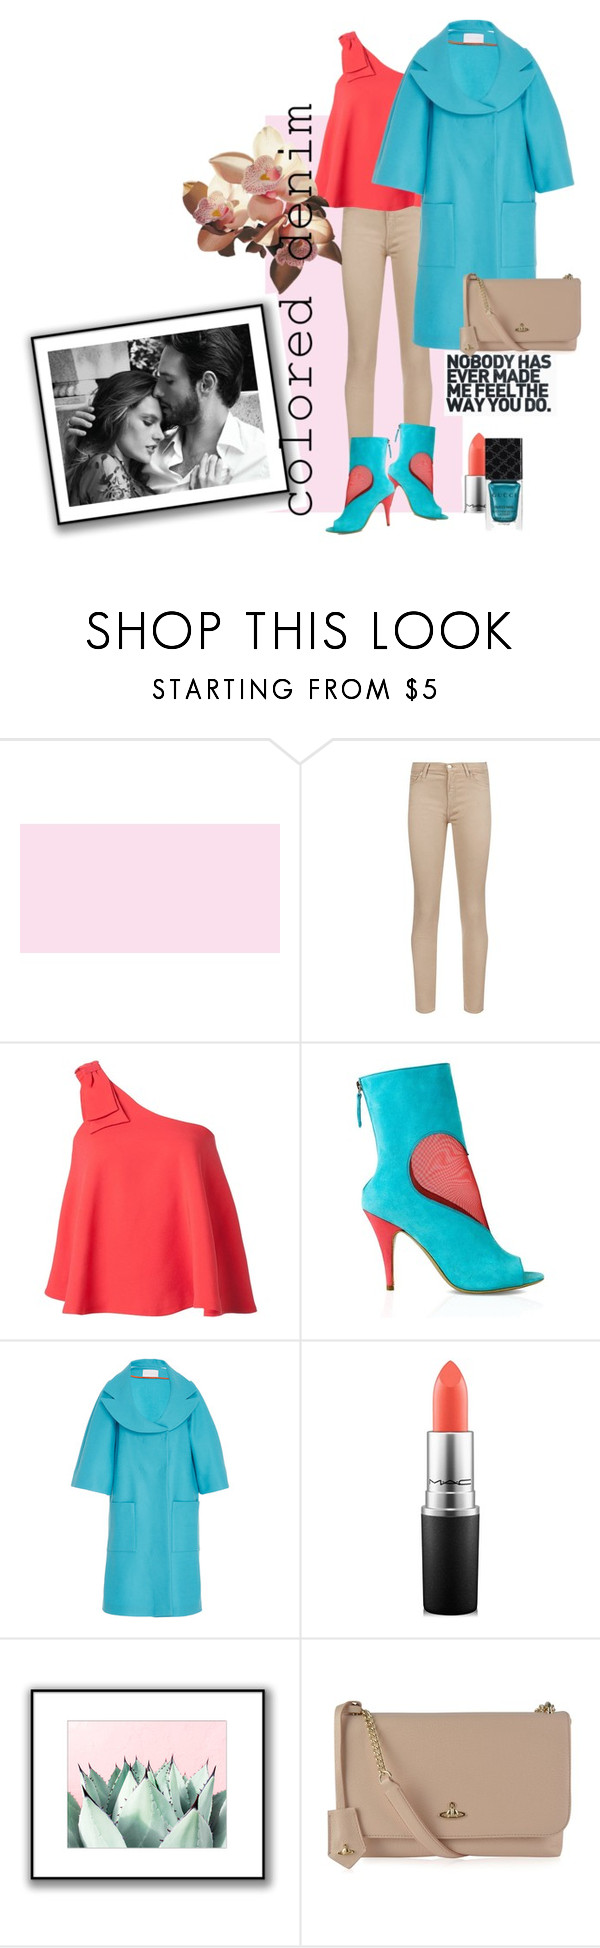 """""""colored#**""""jeans"""" by bluealmonds-dk ❤ liked on Polyvore featuring 7 For All Mankind, Saloni, Konstantina Tzovolou, MAC Cosmetics, Vivienne Westwood, Gucci and coloredjeans"""